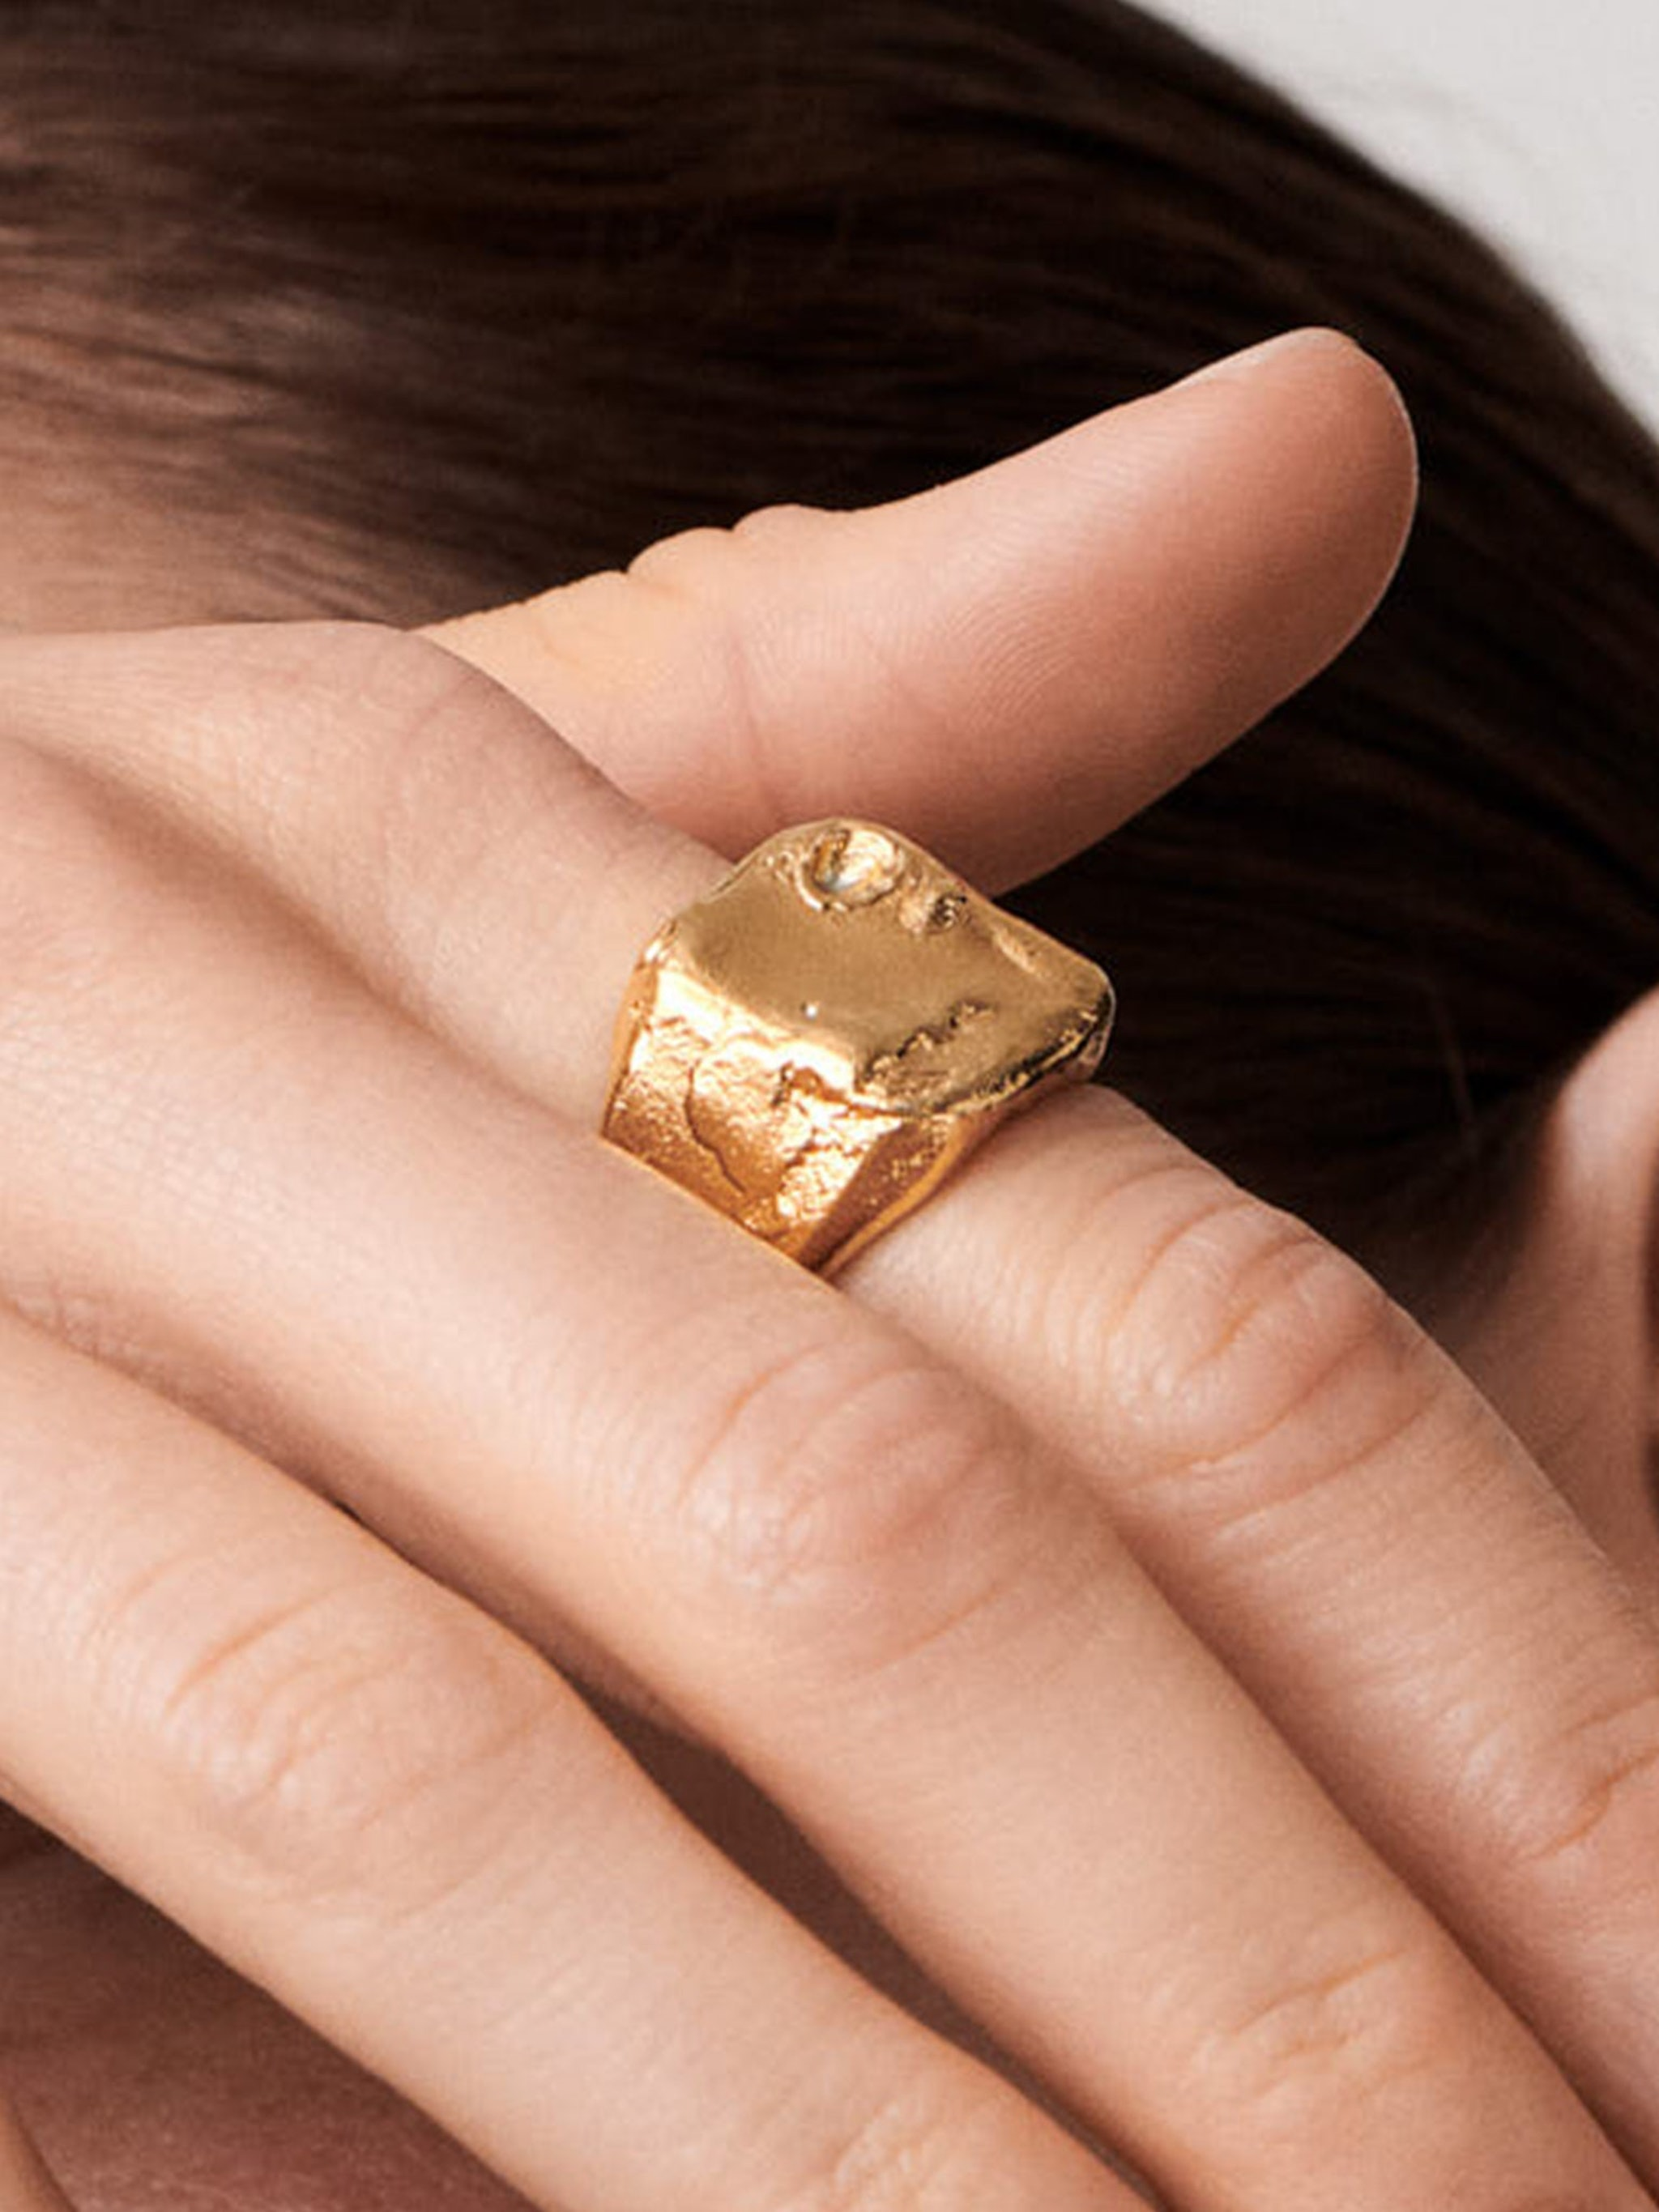 The lost dreamer ring